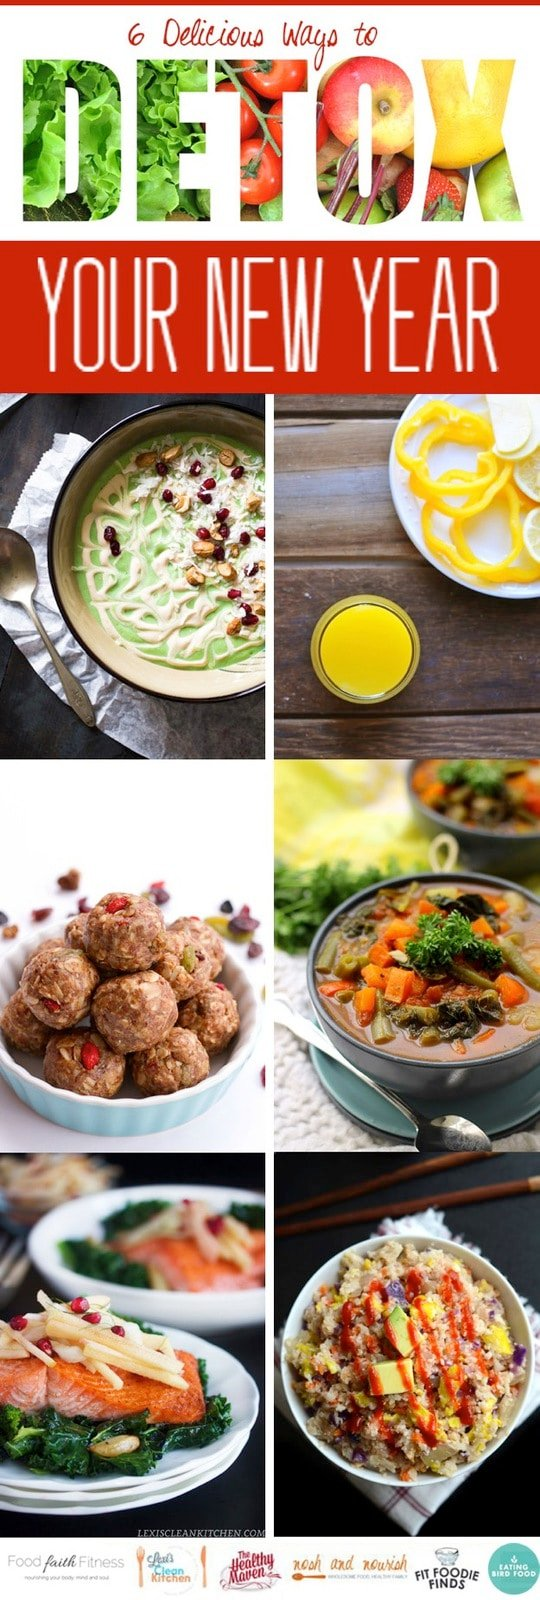 Collage of 6 Delicious Detox Recipes for the New Year